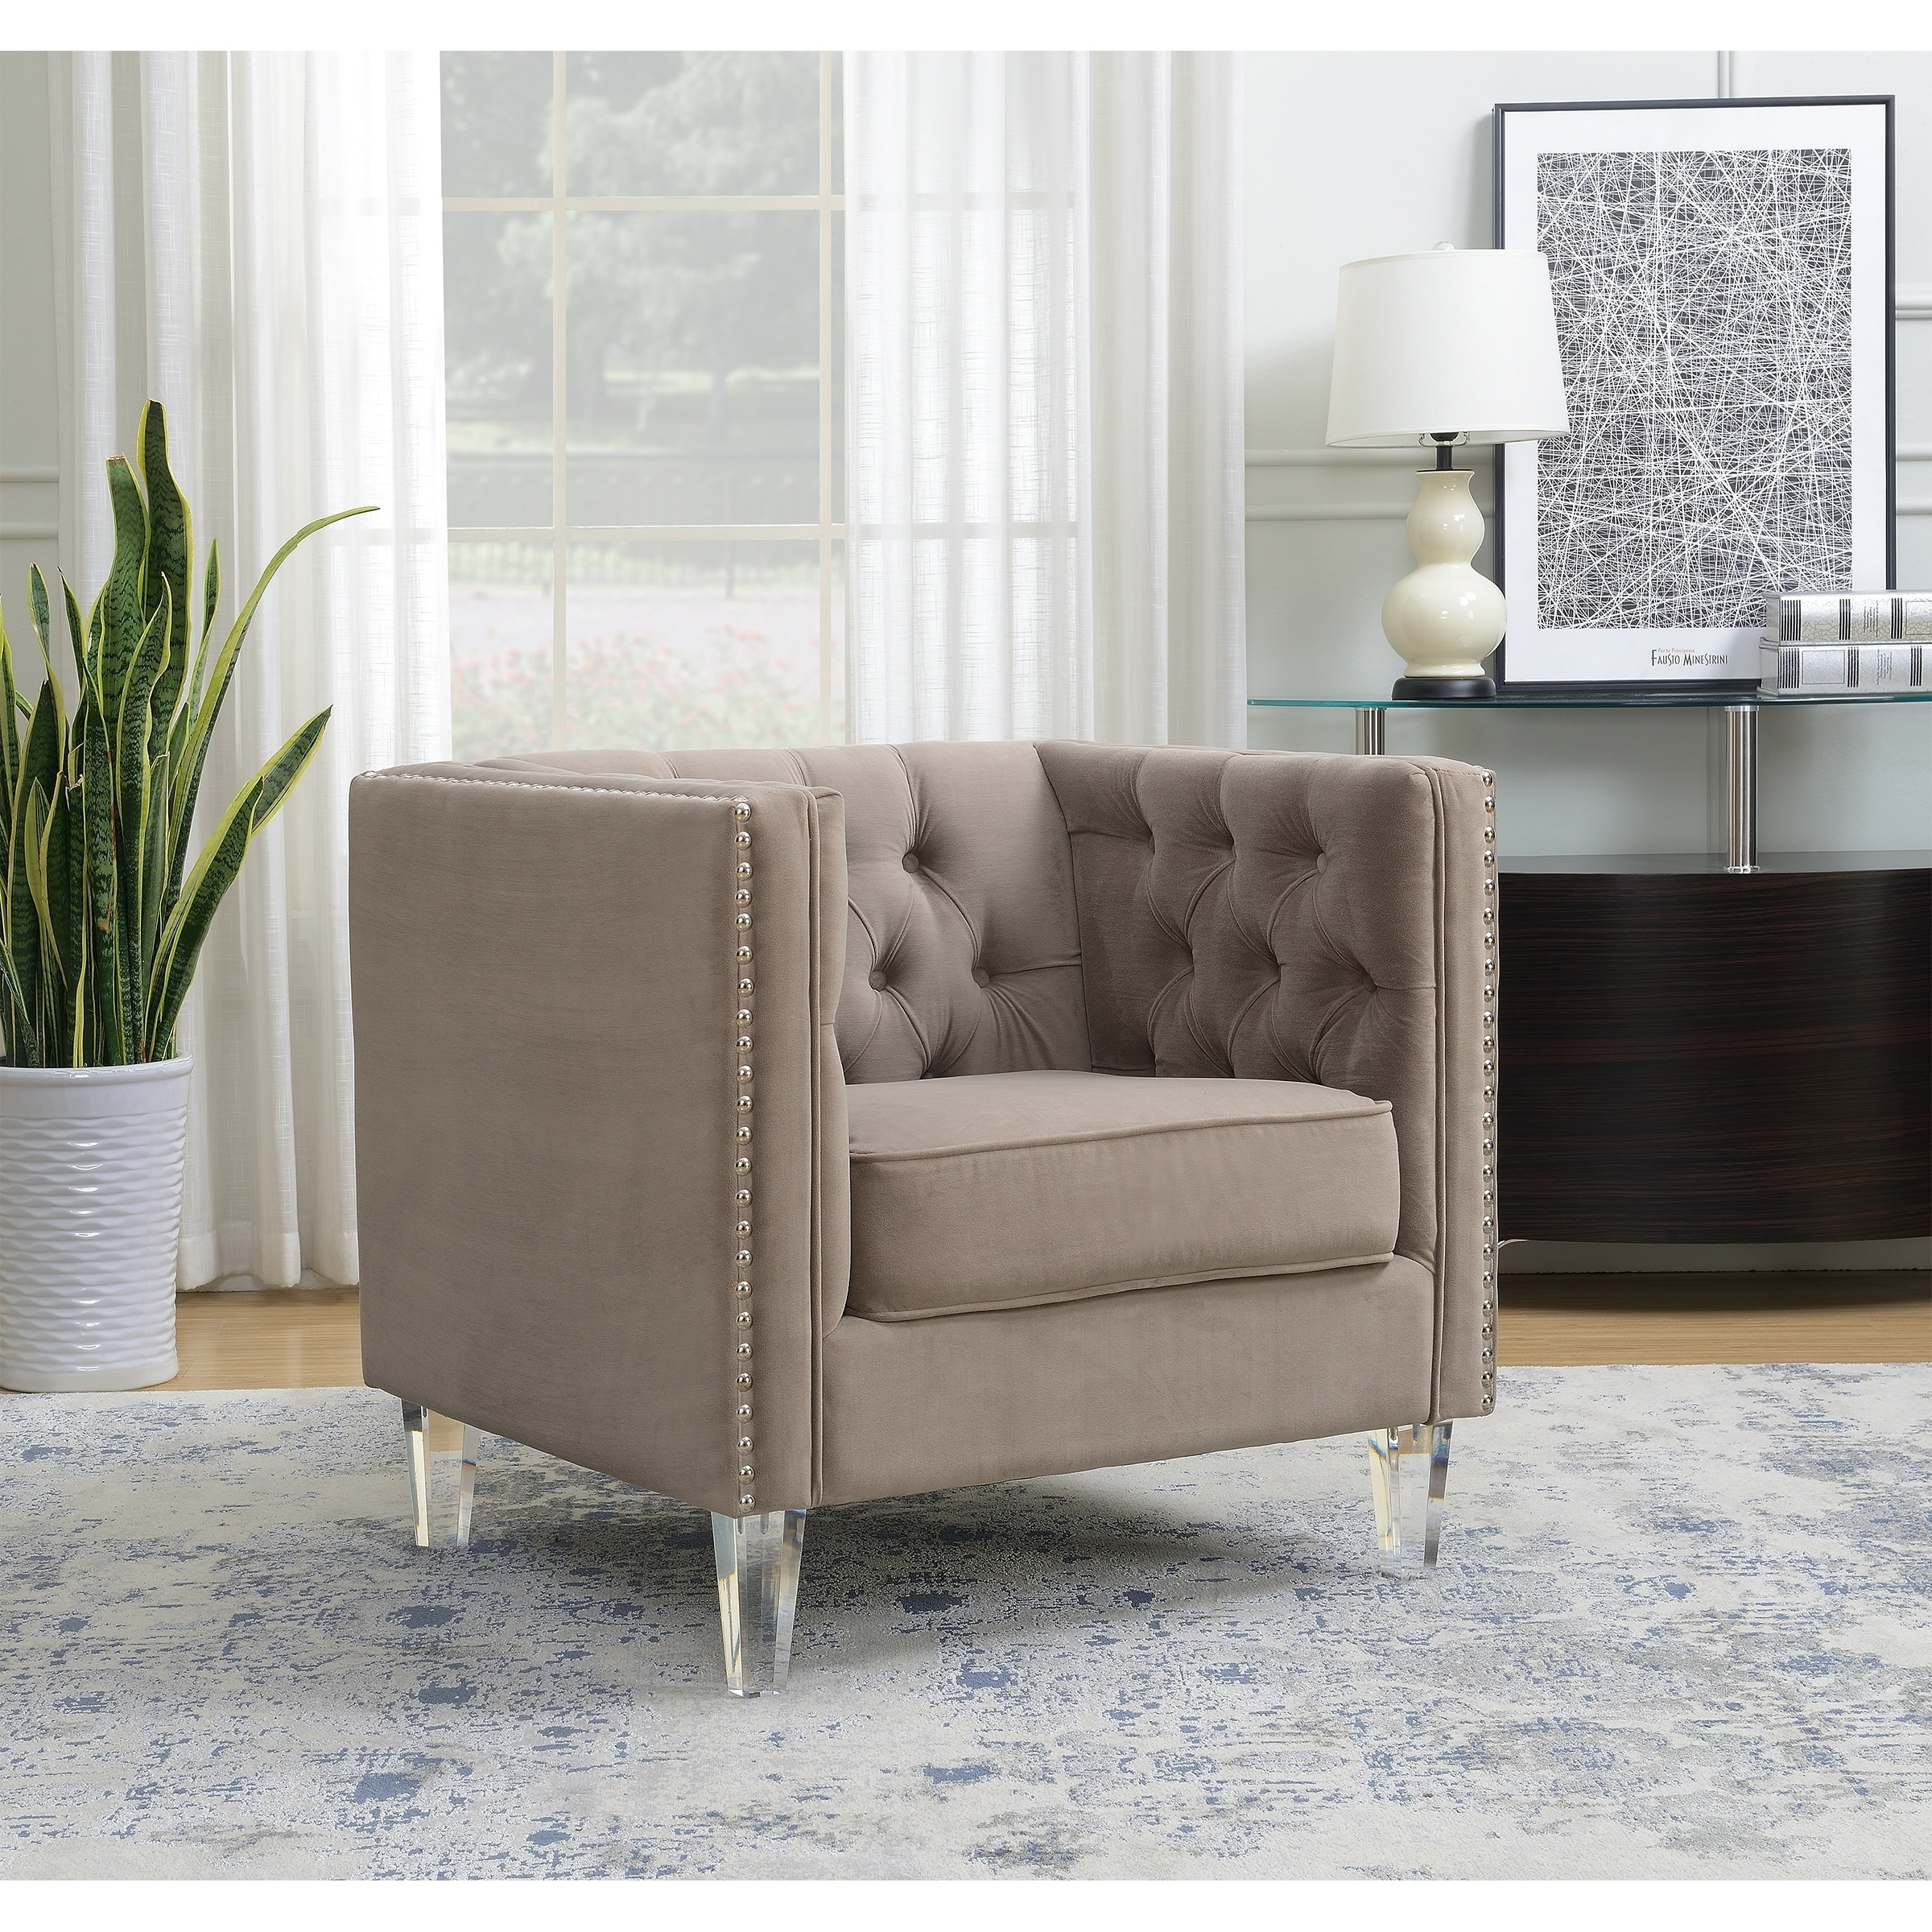 chairs upholstered room interior design livings living floral images